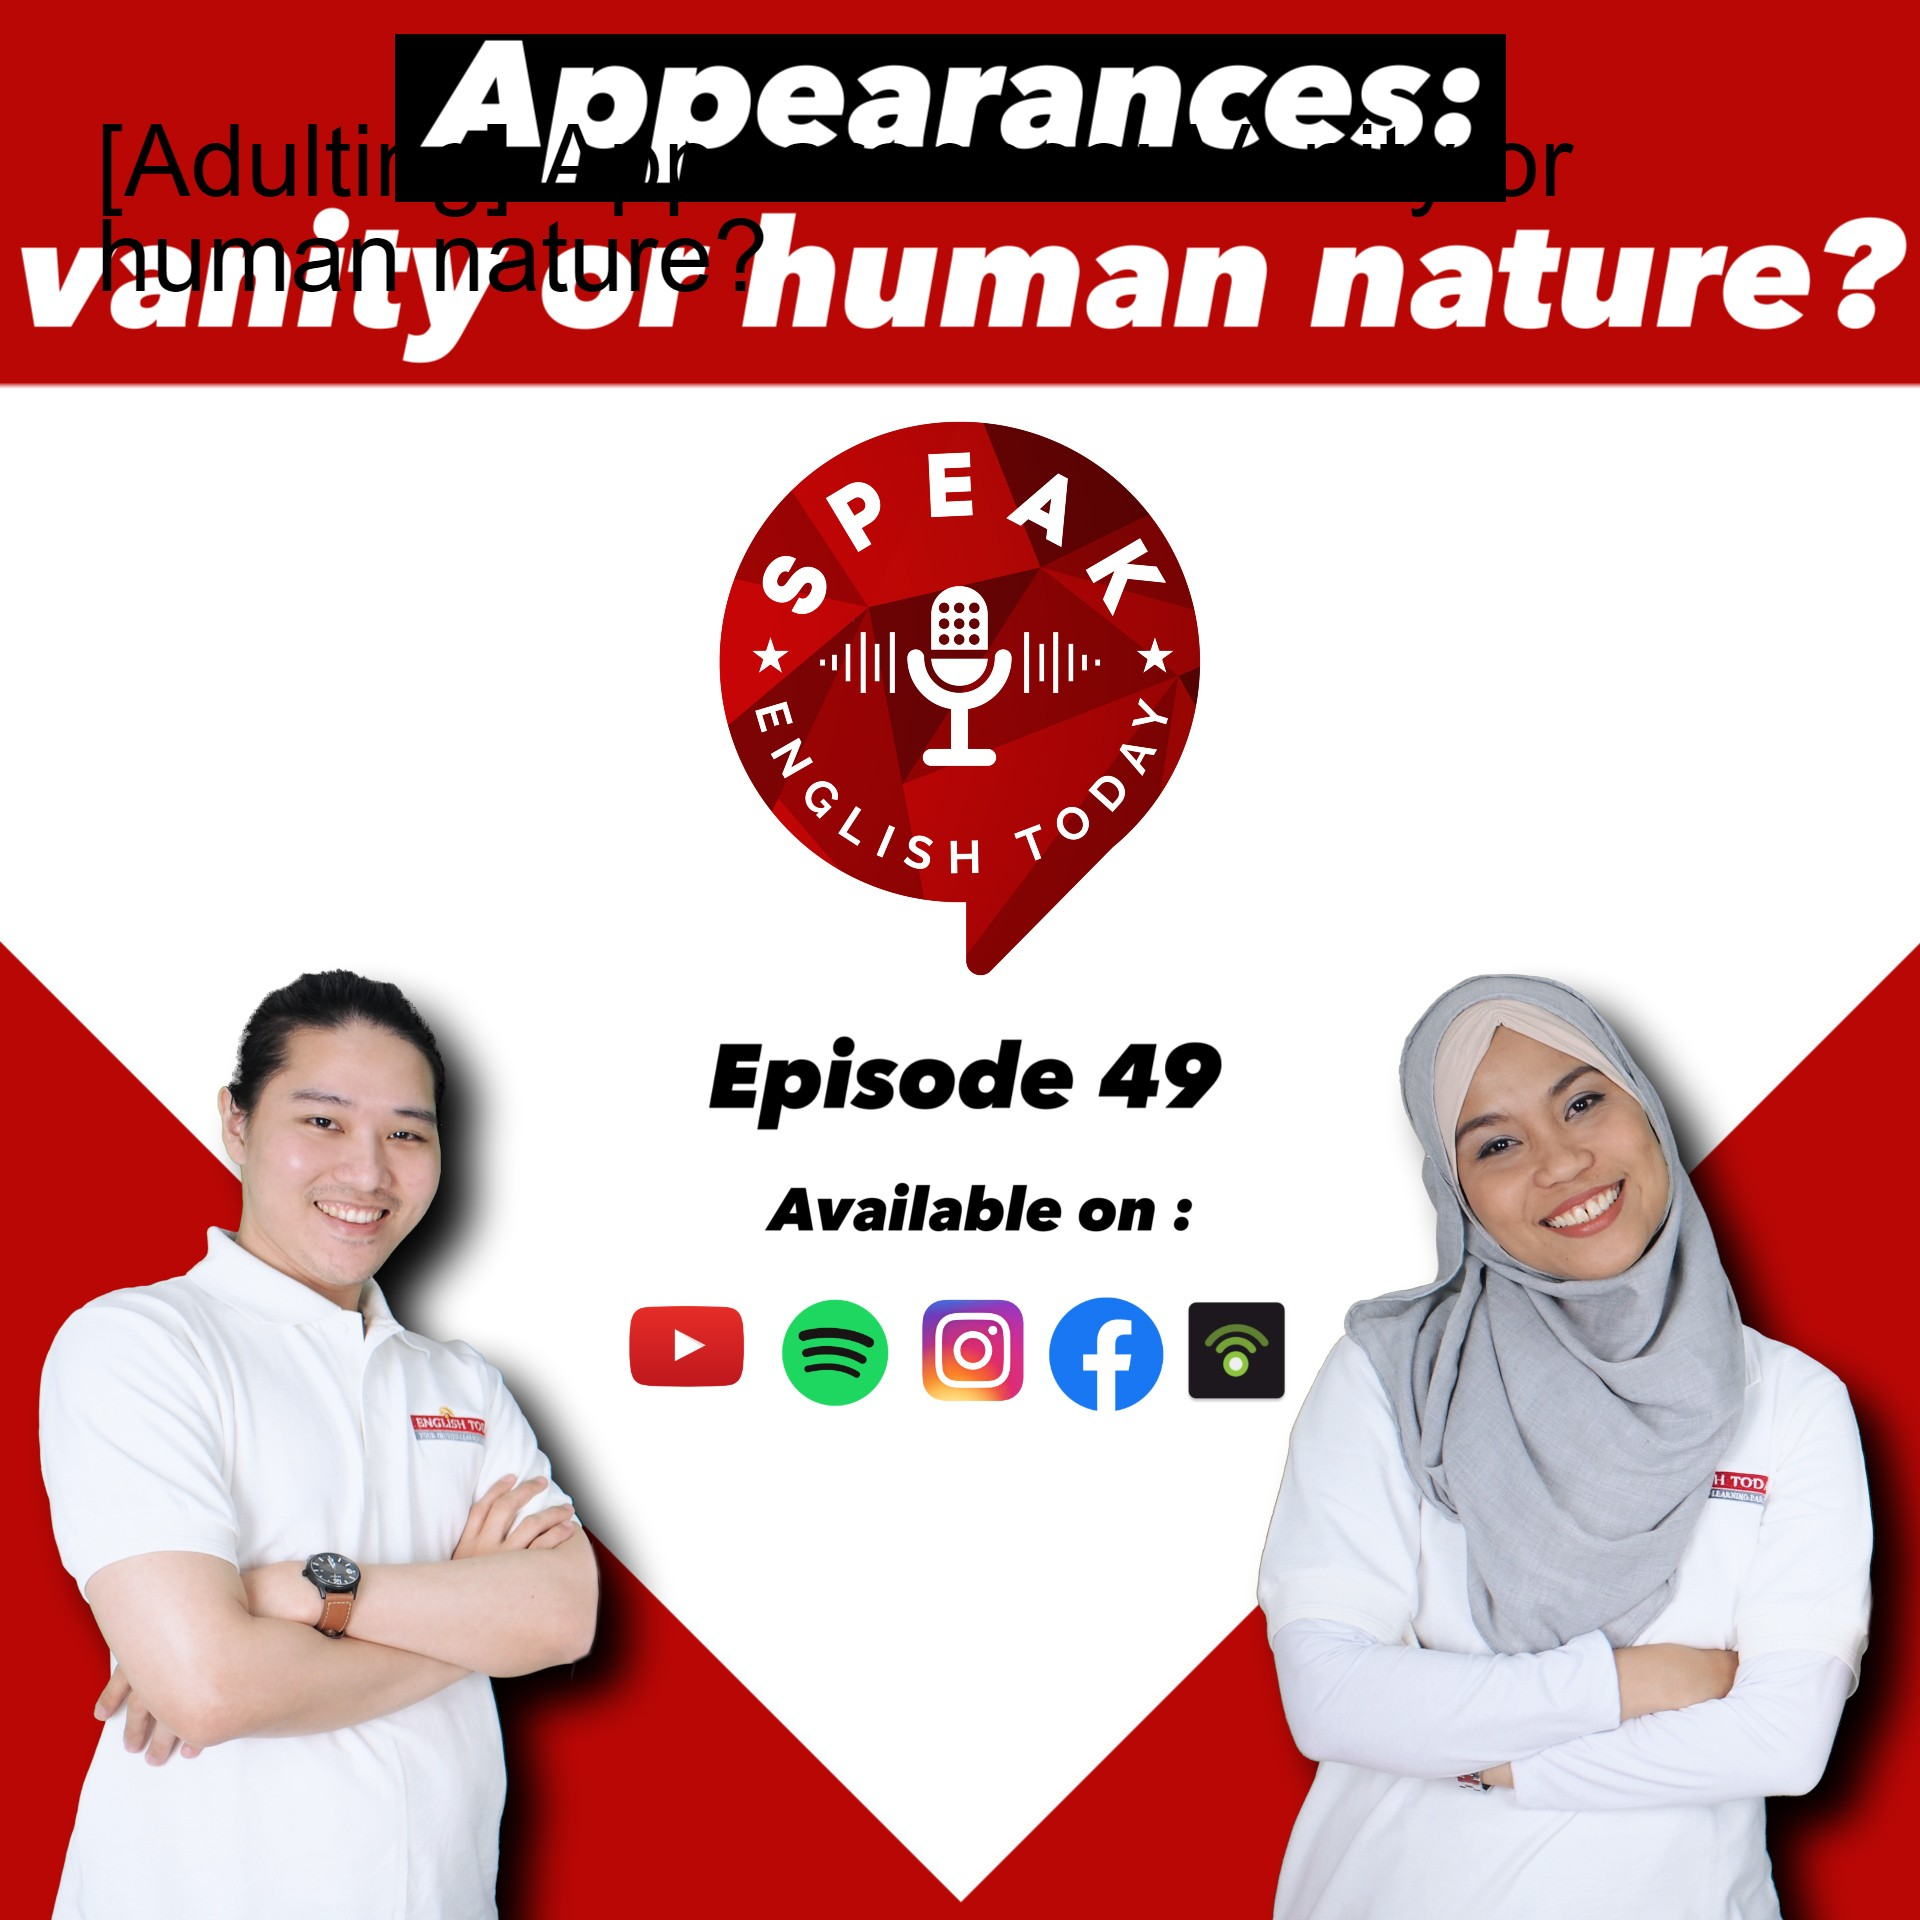 [Adulting] Appearances: Vanity or human nature?